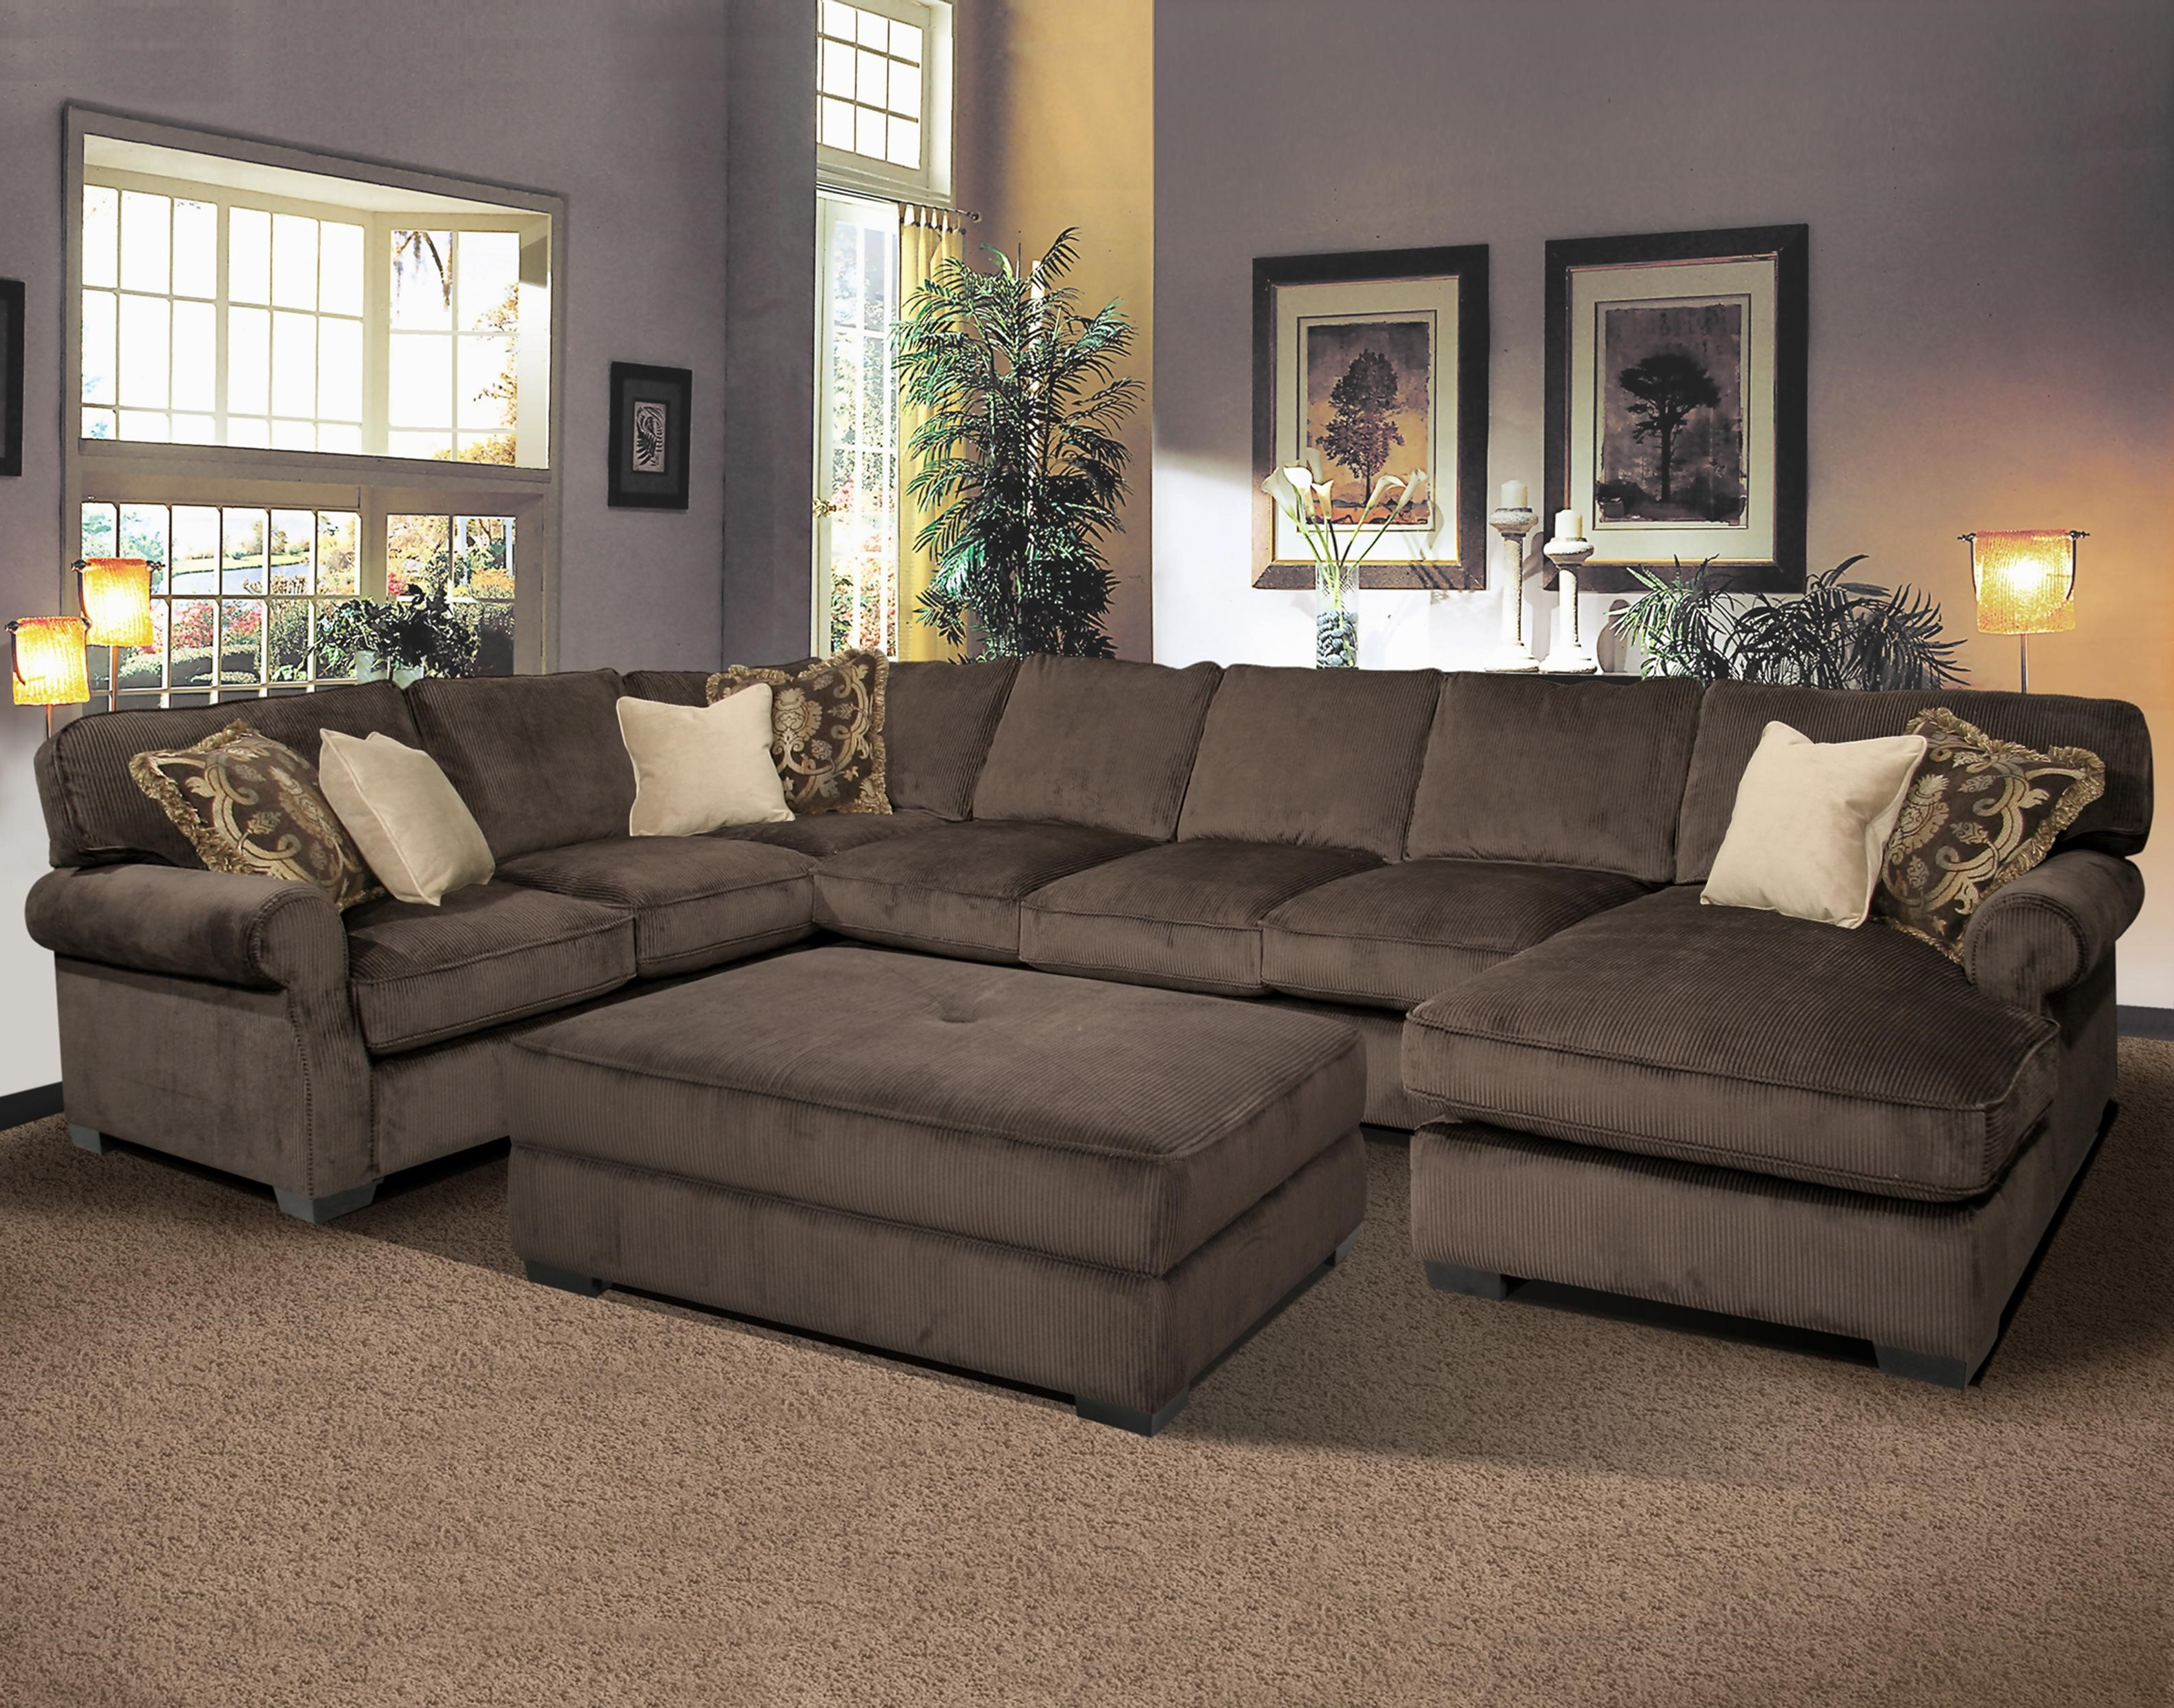 Tallahassee Sectional Sofas Inside Favorite Furniture: Harbor Freight Furniture (View 12 of 15)